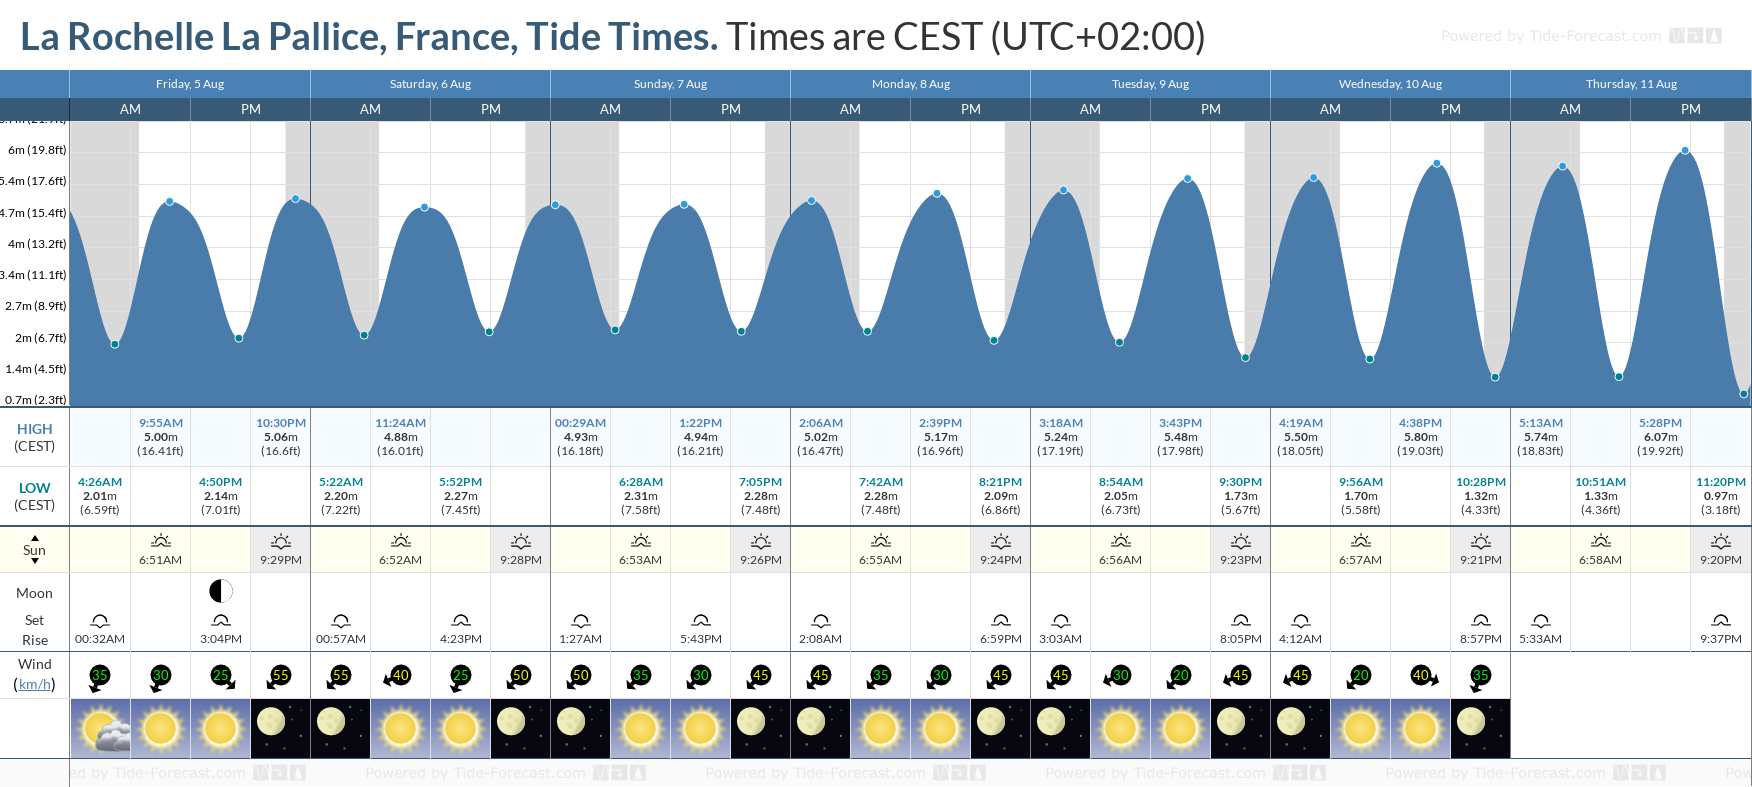 La Rochelle La Pallice, France Tide Chart including high and low tide tide times for the next 7 days